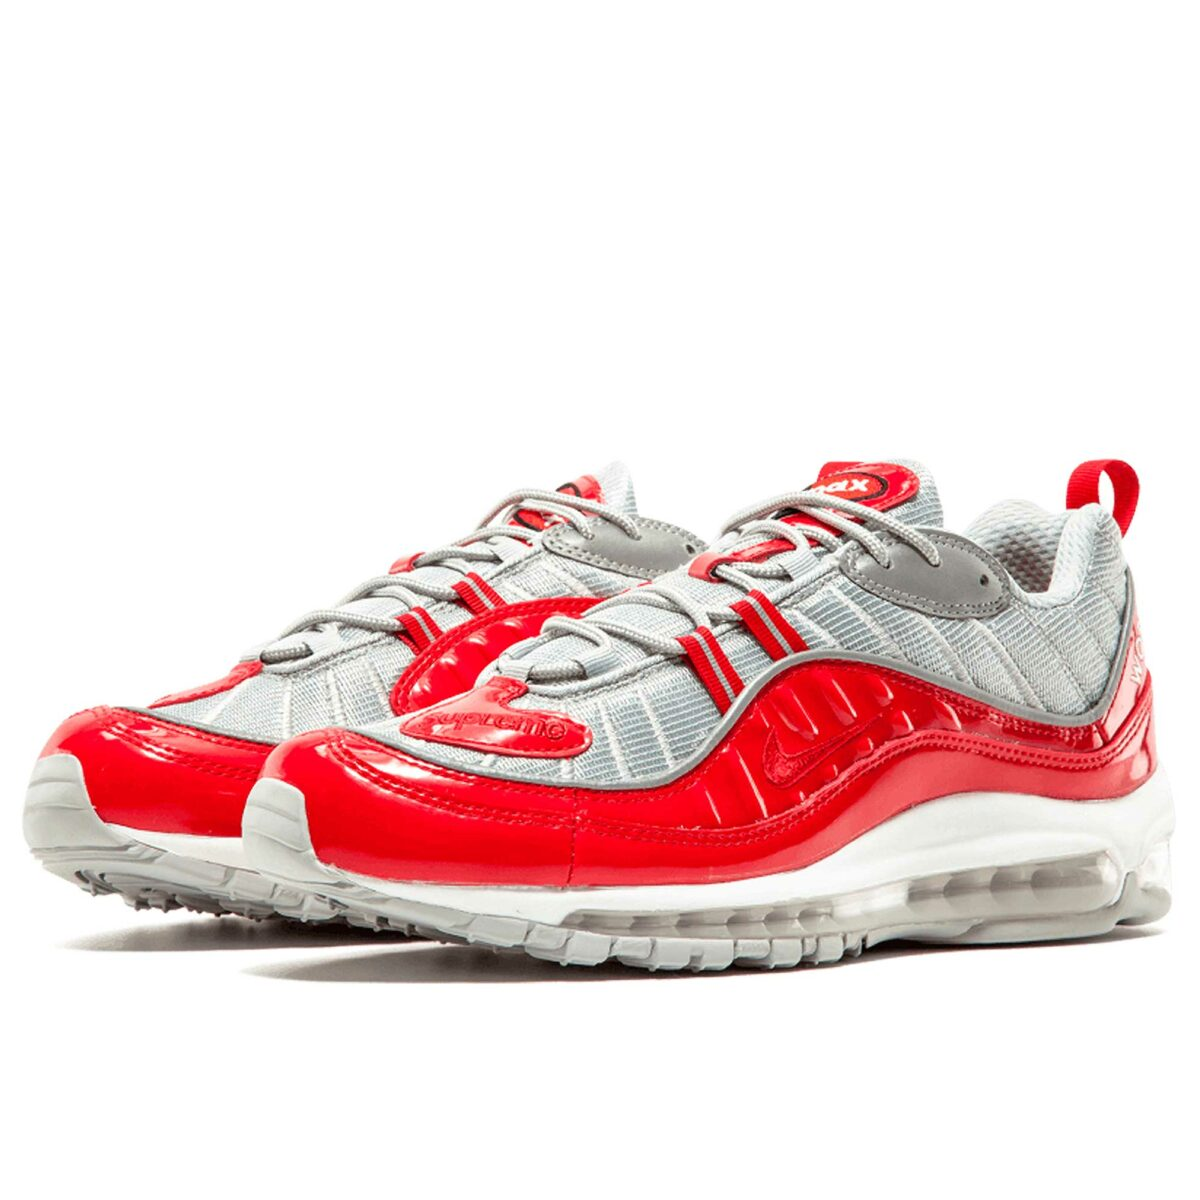 nike air max 98 supreme silver red 844694_600 купить